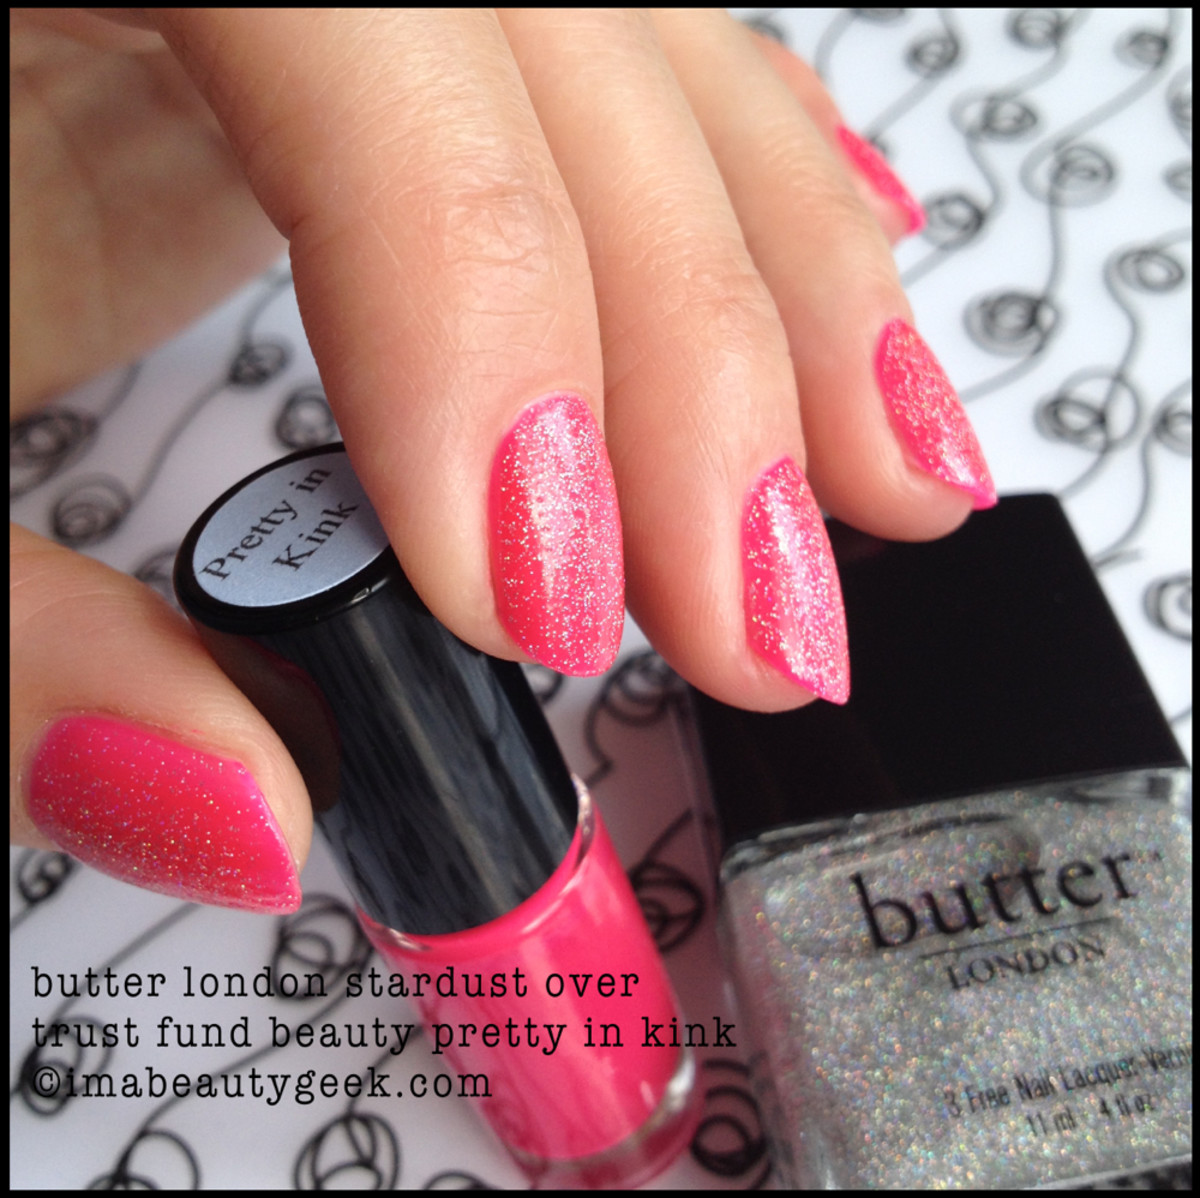 Trust Fund Beauty Pretty in Kink w Butter London Stardust